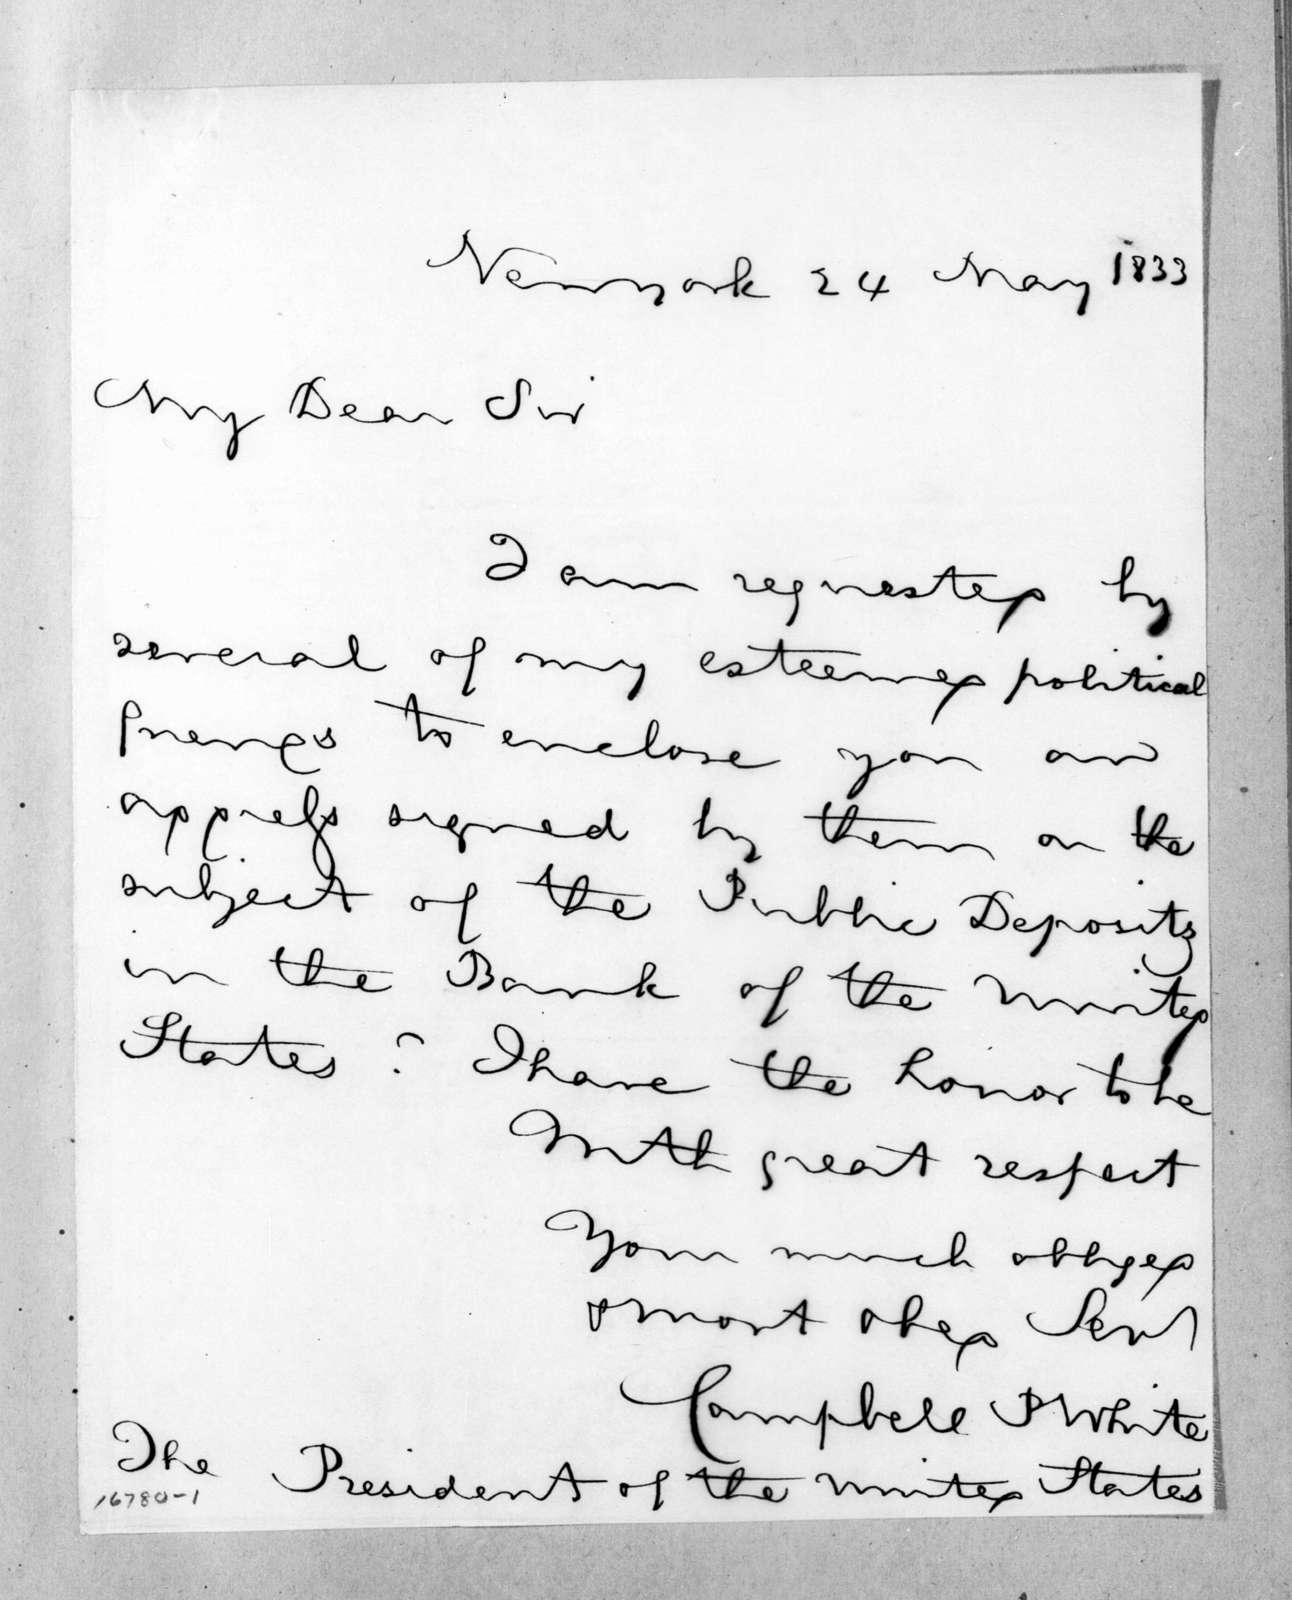 Campbell Patrick White to Andrew Jackson, May 24, 1833